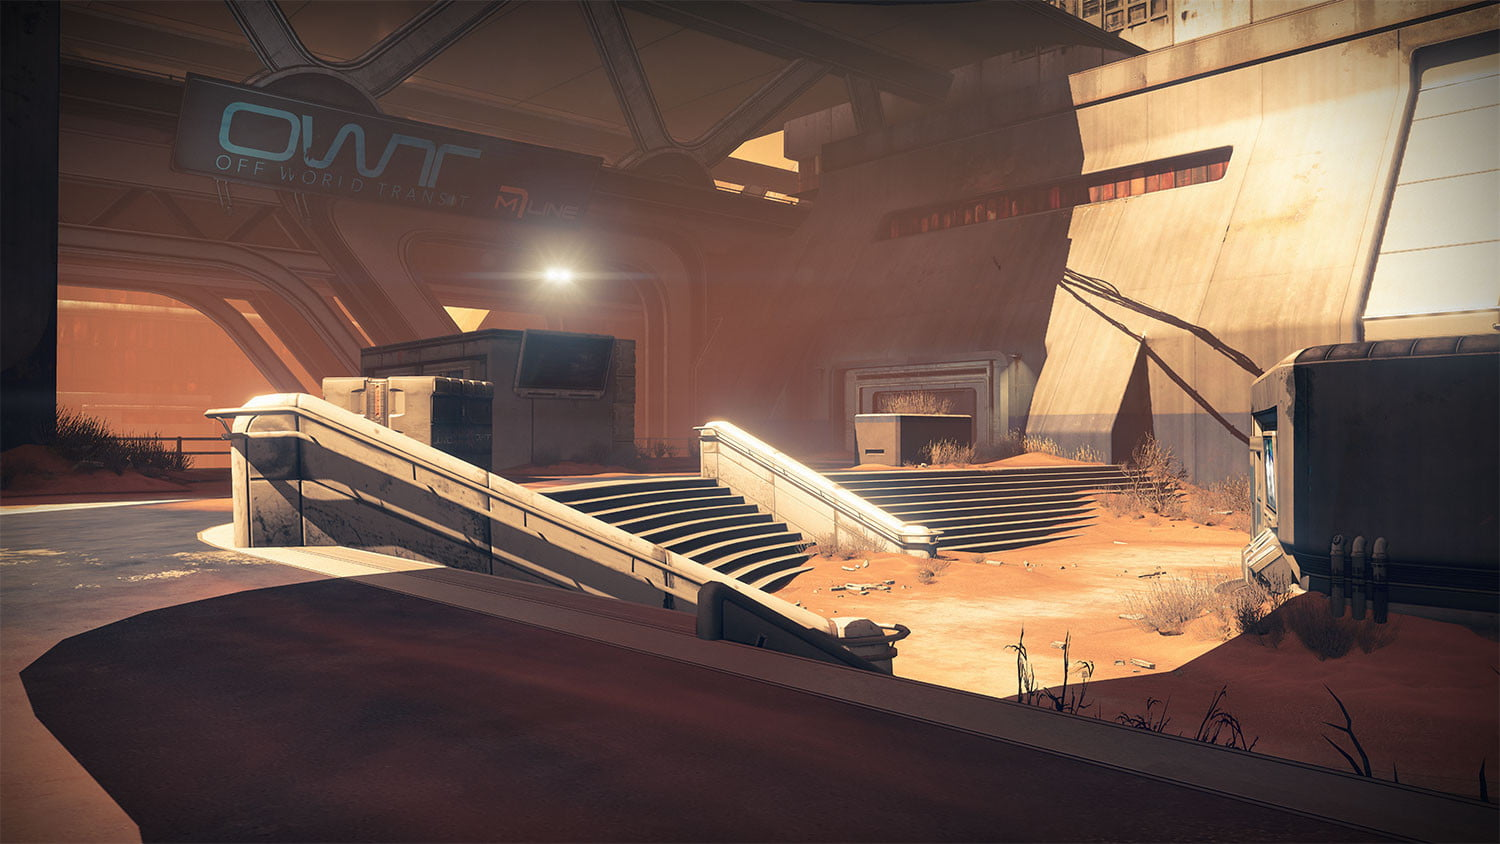 Destiny rise of iron feels familiar but keeps you coming back